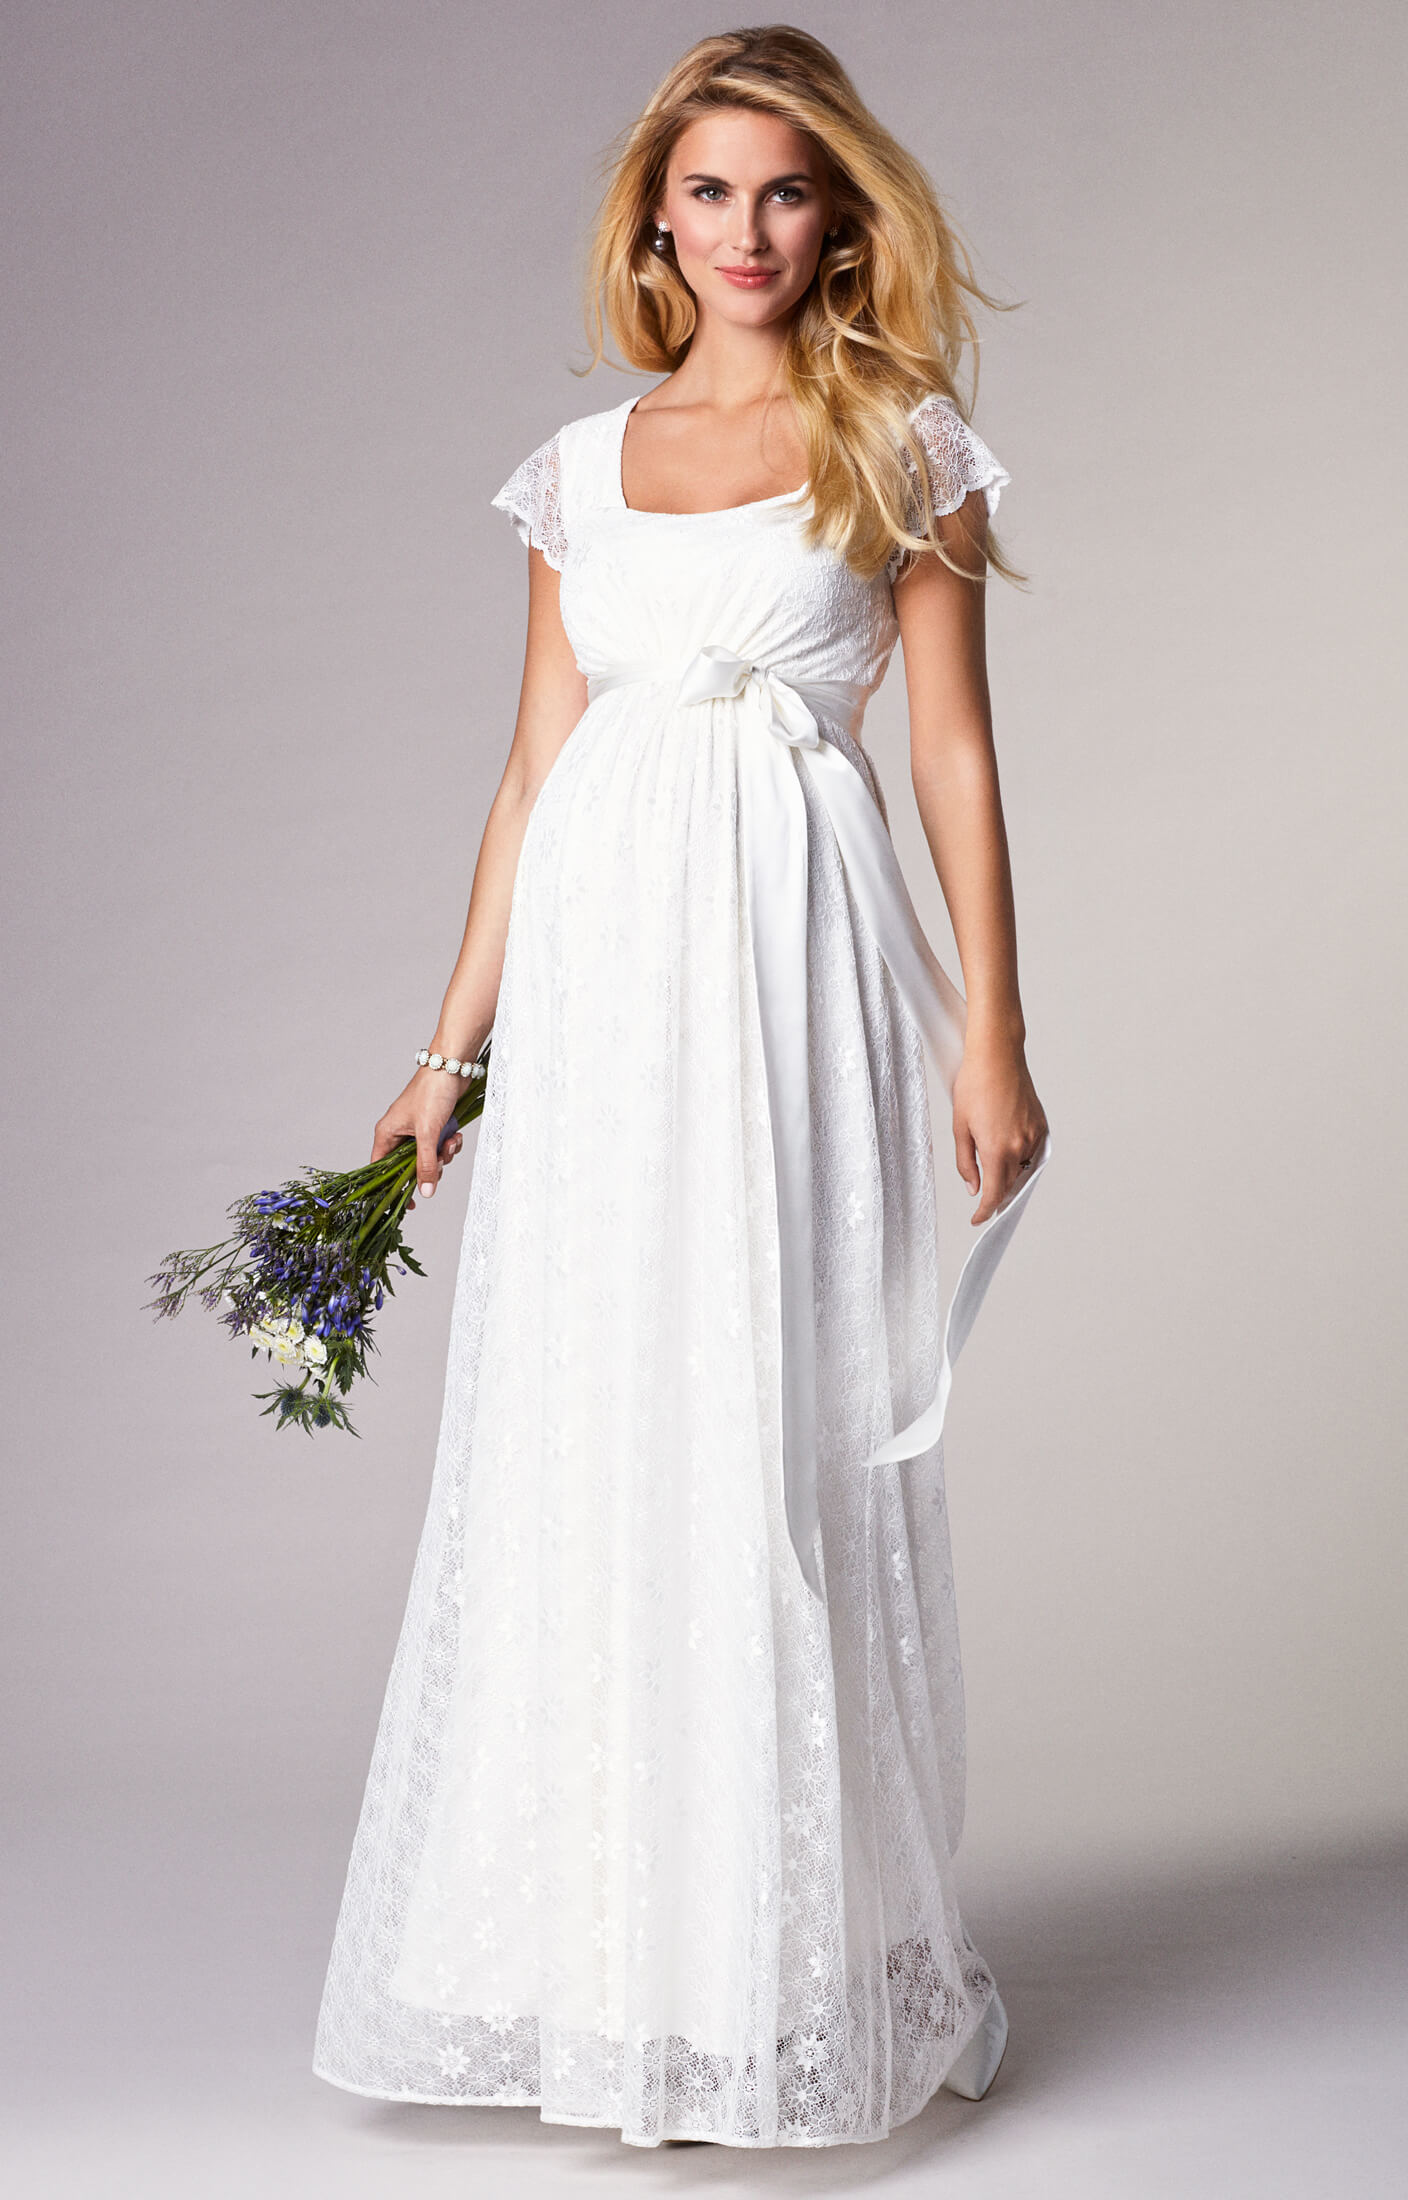 Florence maternity wedding gown long ivory maternity wedding florence maternity wedding gown long ivory by tiffany rose junglespirit Images